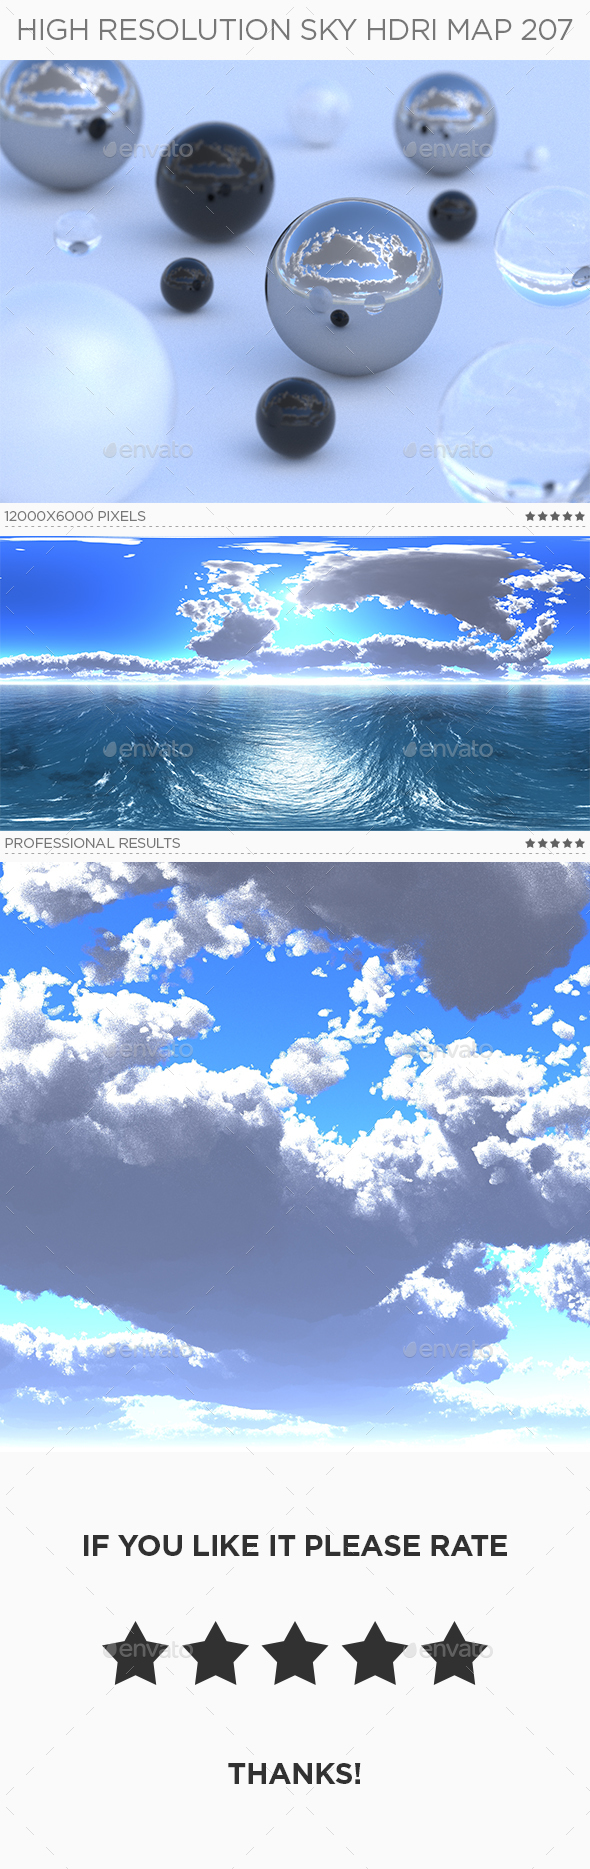 High Resolution Sky HDRi Map 207 - 3DOcean Item for Sale